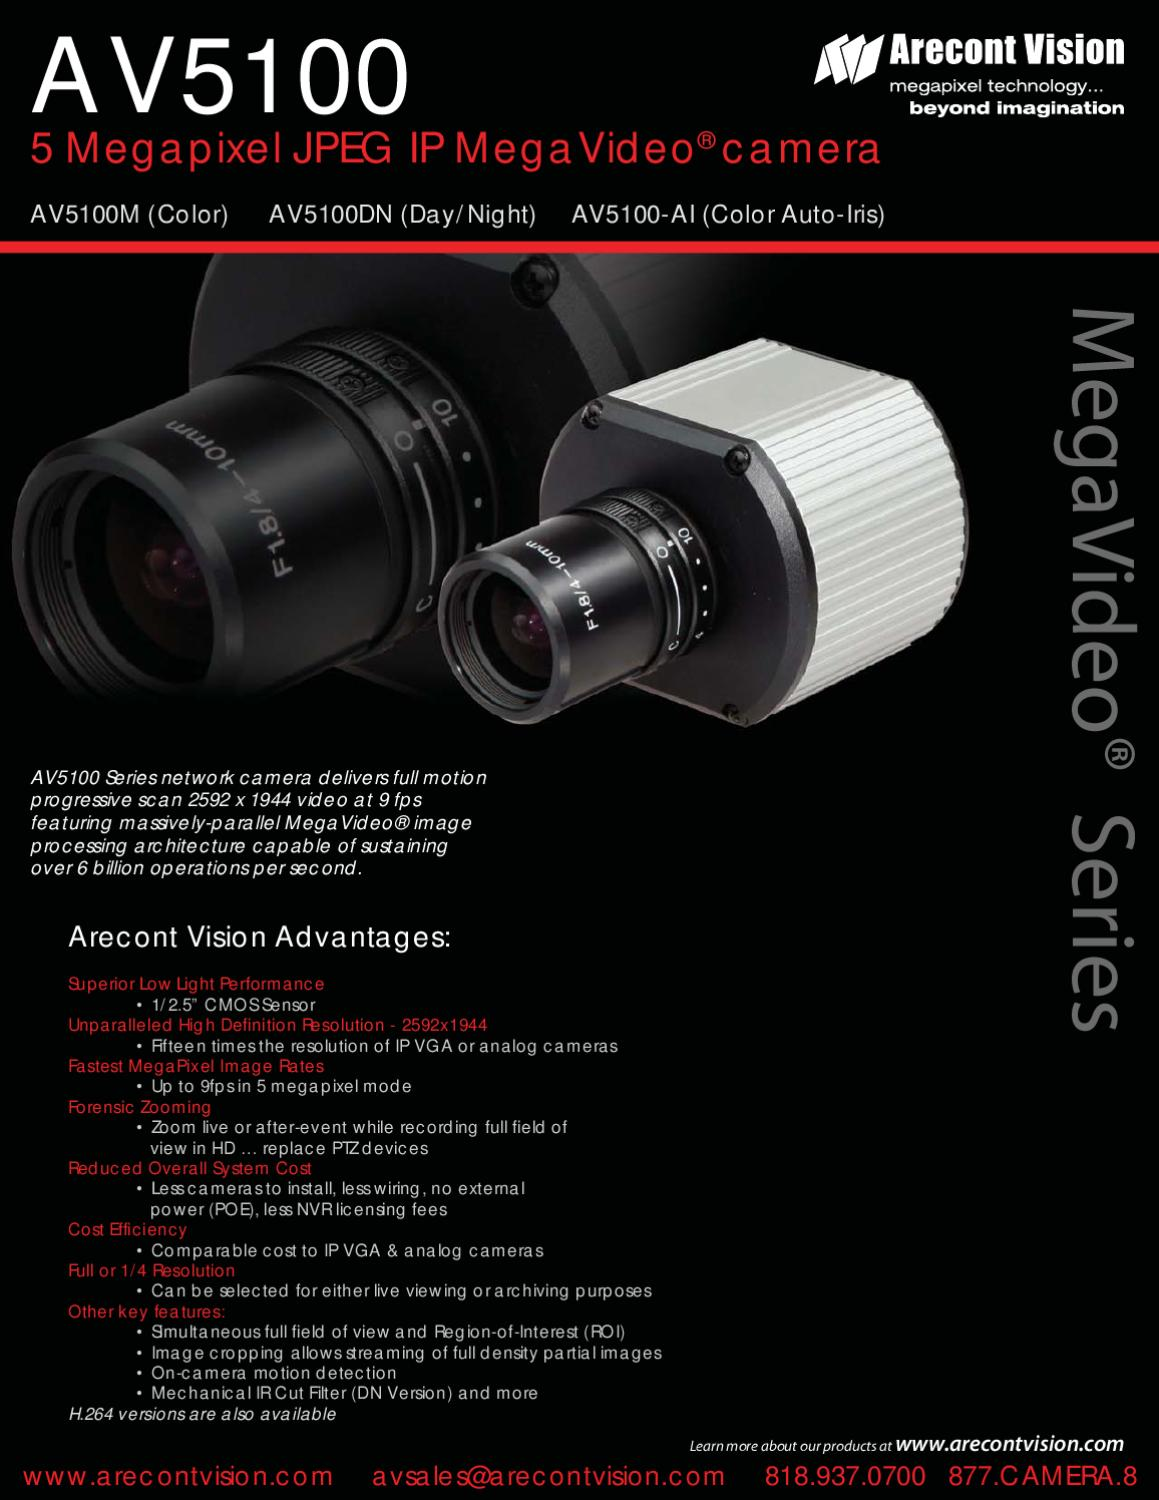 Arecont Vision_AV5100_12.09 by Arecont Vision